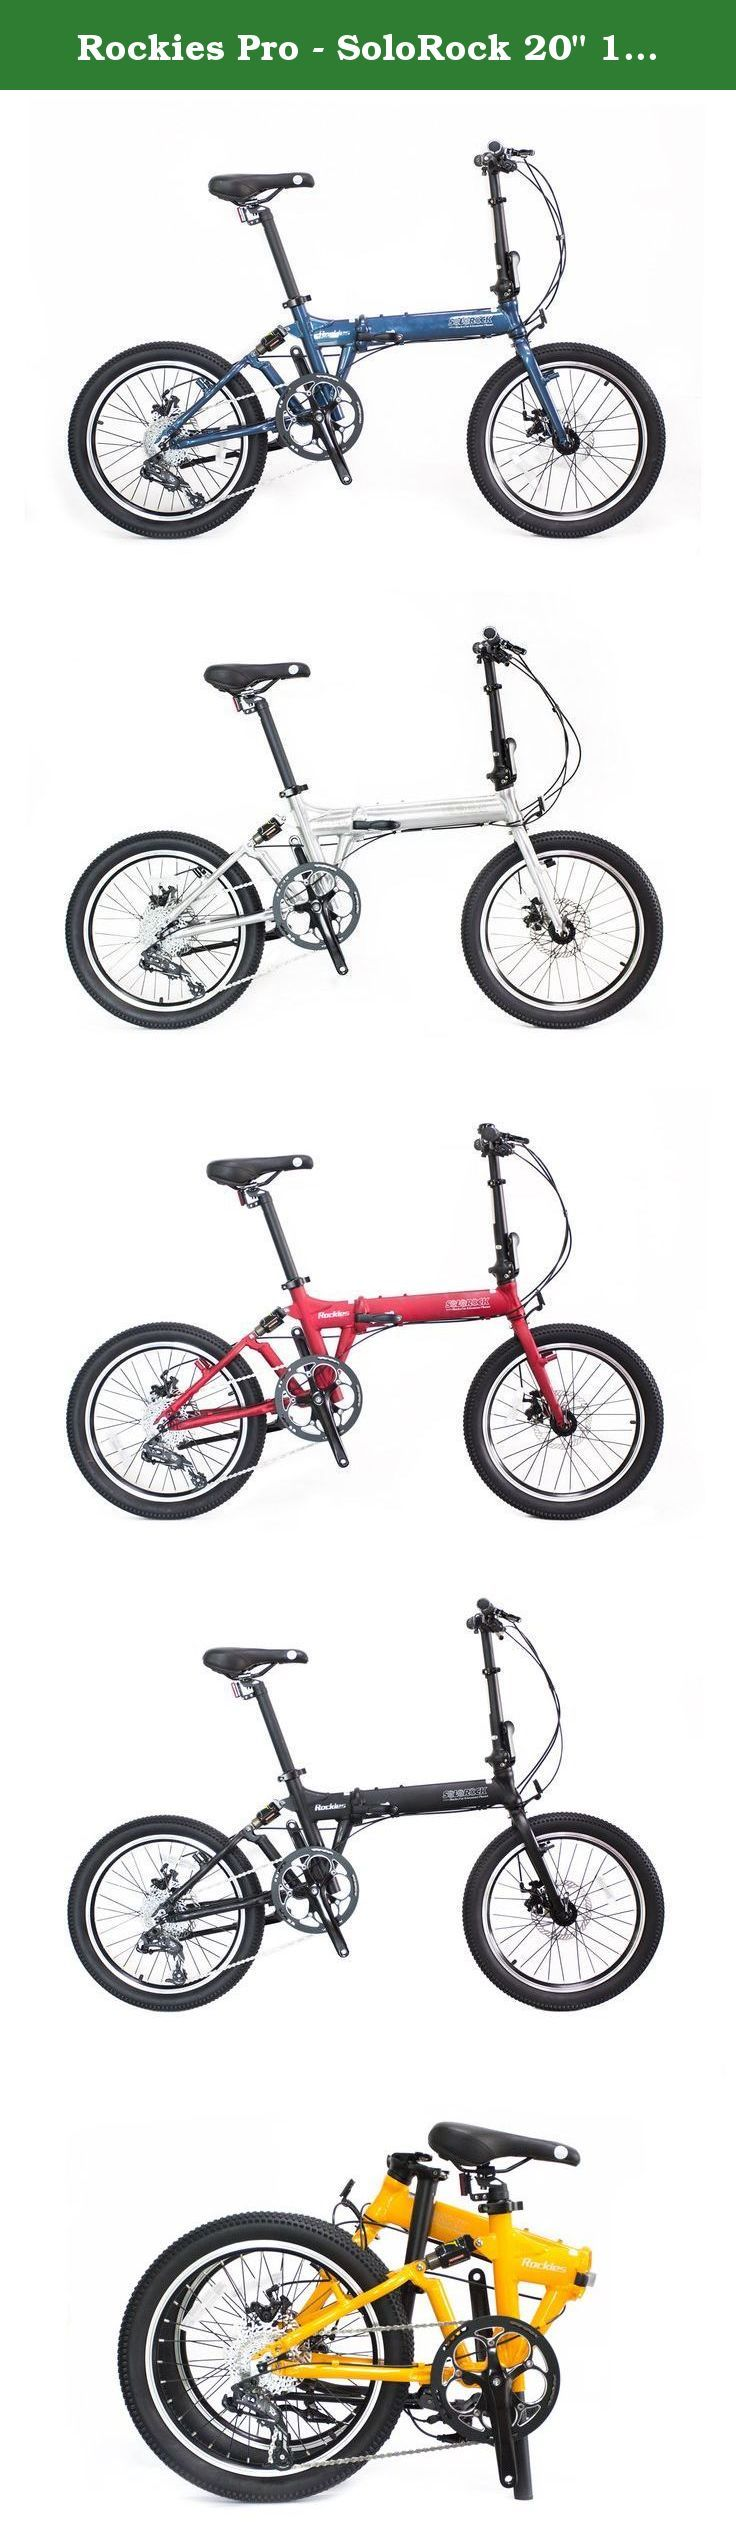 "Rockies Pro - SoloRock 20"" 10 Speed Aluminum Folding Bike. Model: Rockies SRFFA2073, Aluminum 20"" Frame with Rear Suspension, 10 Speed Sram X7, SoloRock® Brand; Features: 10 Speed Sram X7, Disc Brakes, Quick release wheels, Fat Tires - 2.1"" Kenda, Rear Air Suspension, Frame / Fork / Handlebar / seat post Material: 100% 6061 Aluminum; Folding Hinges for top tube and handle bar - Patented 3D forged high strength aluminum folding hinges, Patented semi-arc clamps; Folding Size: 29 x 80 x 66cm…"